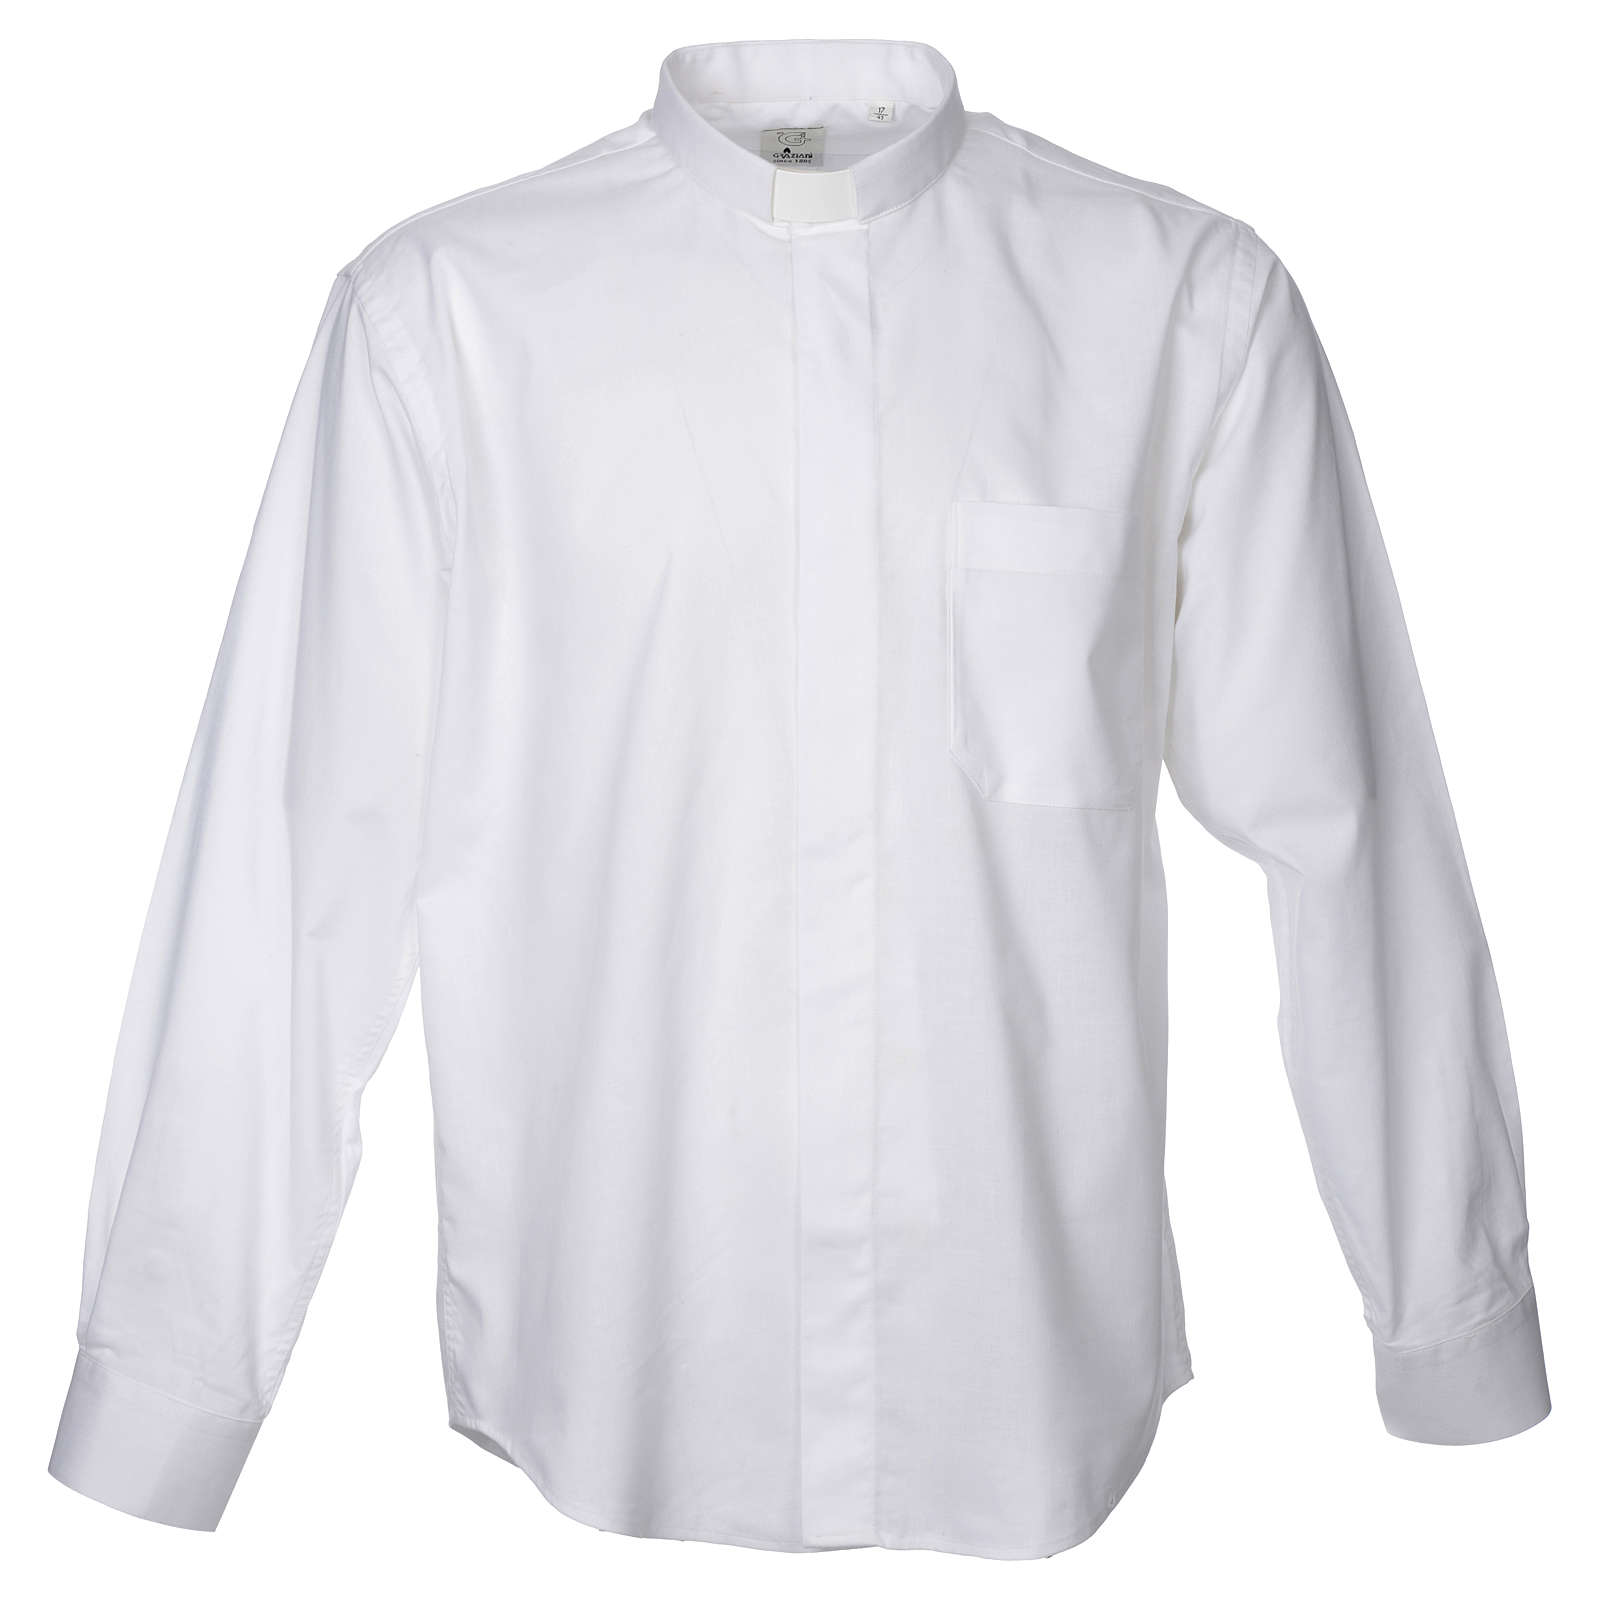 STOCK Clergy shirt in white mixed cotton, long sleeves 4